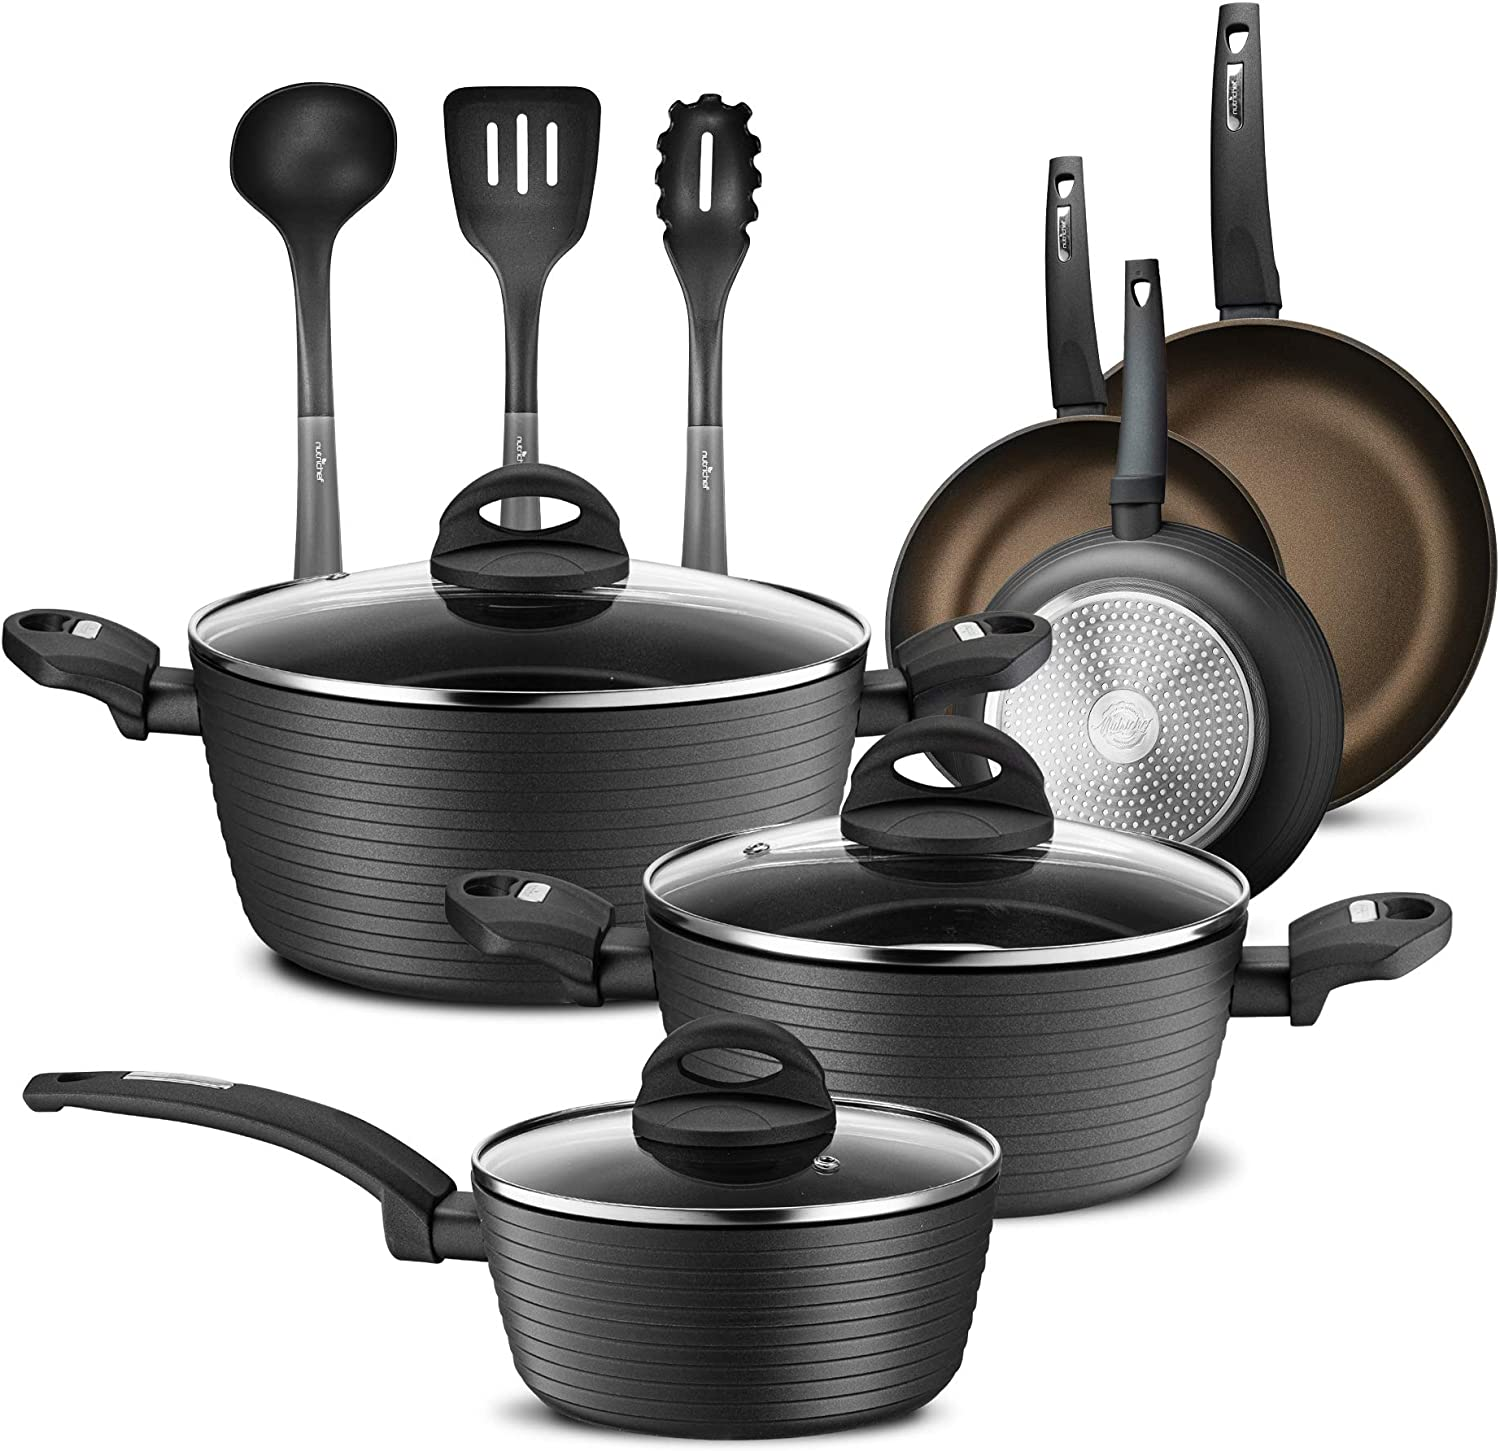 NutriChef 12-Piece Nonstick Kitchen Cookware Set - Professional Hard Anodized Home Kitchen Ware Pots and Pan Set, Includes Saucepan, Frying Pans, Cooking Pots, Dutch Oven Pot, Lids, Utensil - NCCW12S